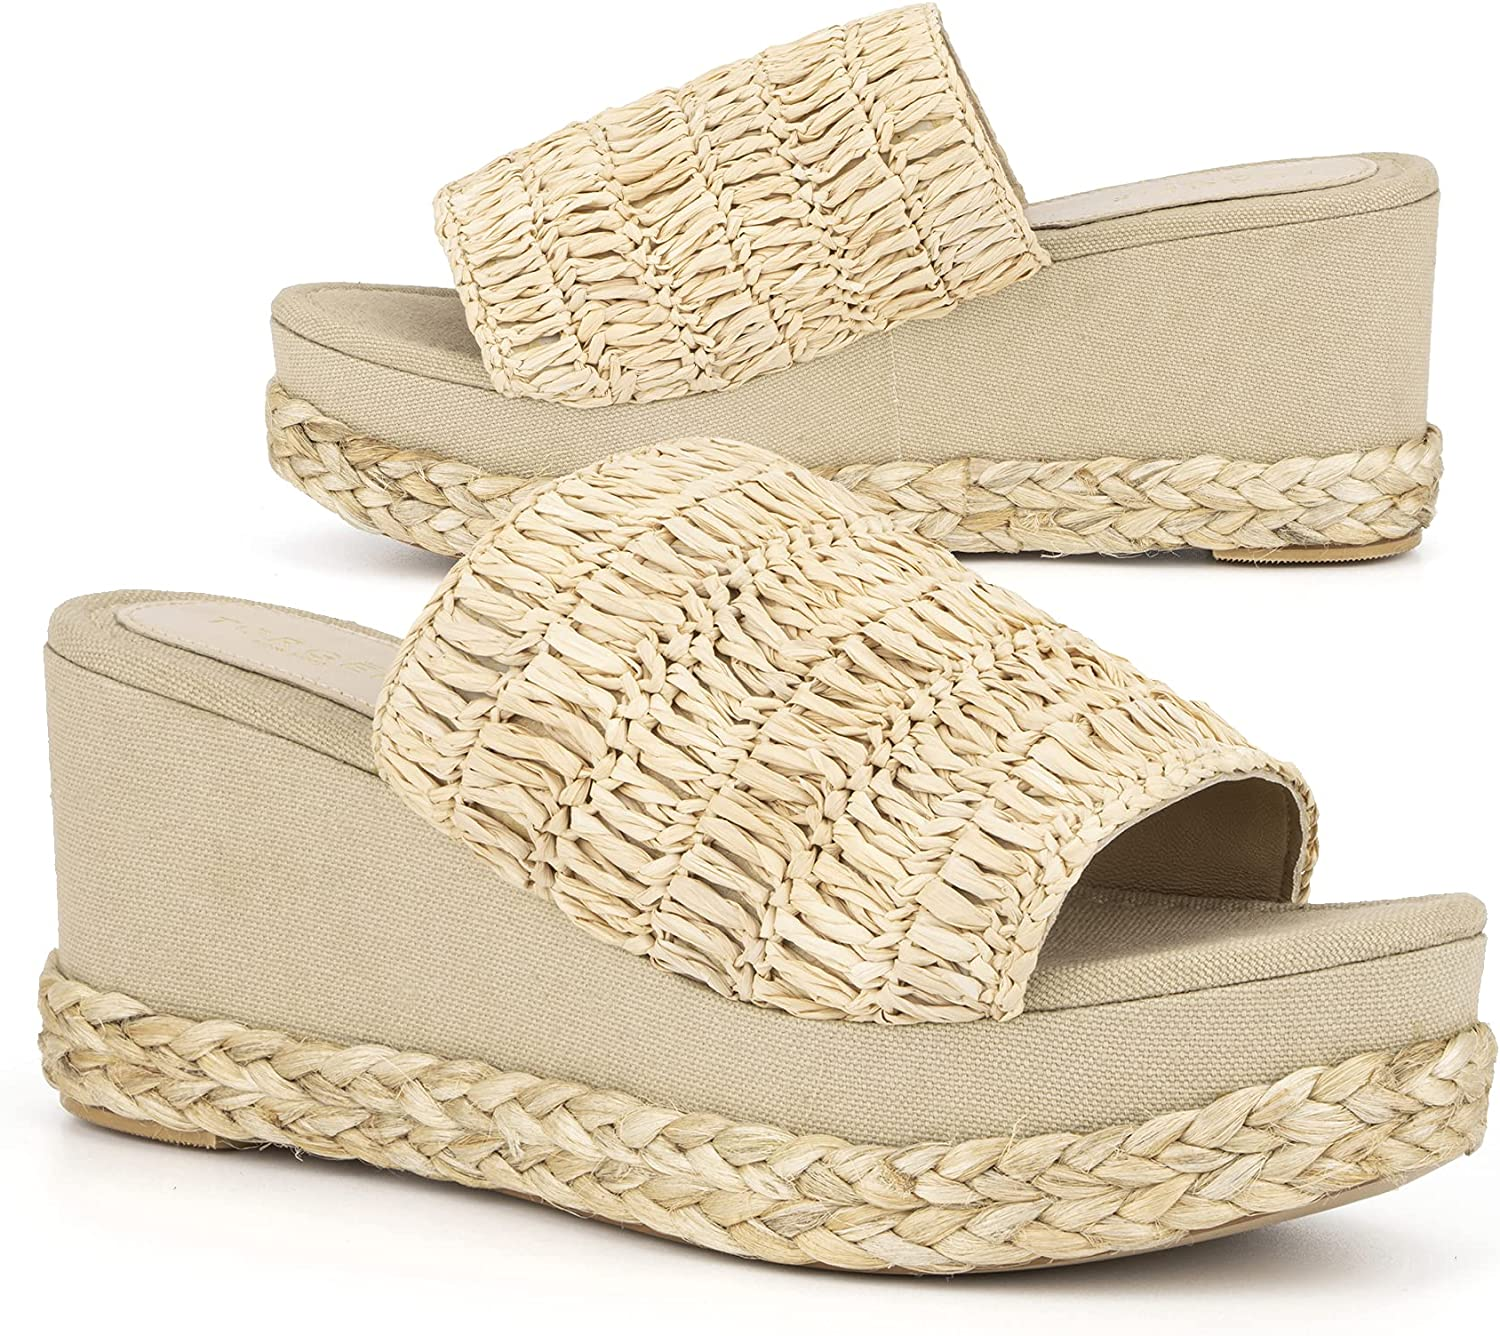 Torgeis Women's Neith Espadrille Slip-On Wedged Platform Heeled Sandal, Round Open Toe, Rubber Outsole